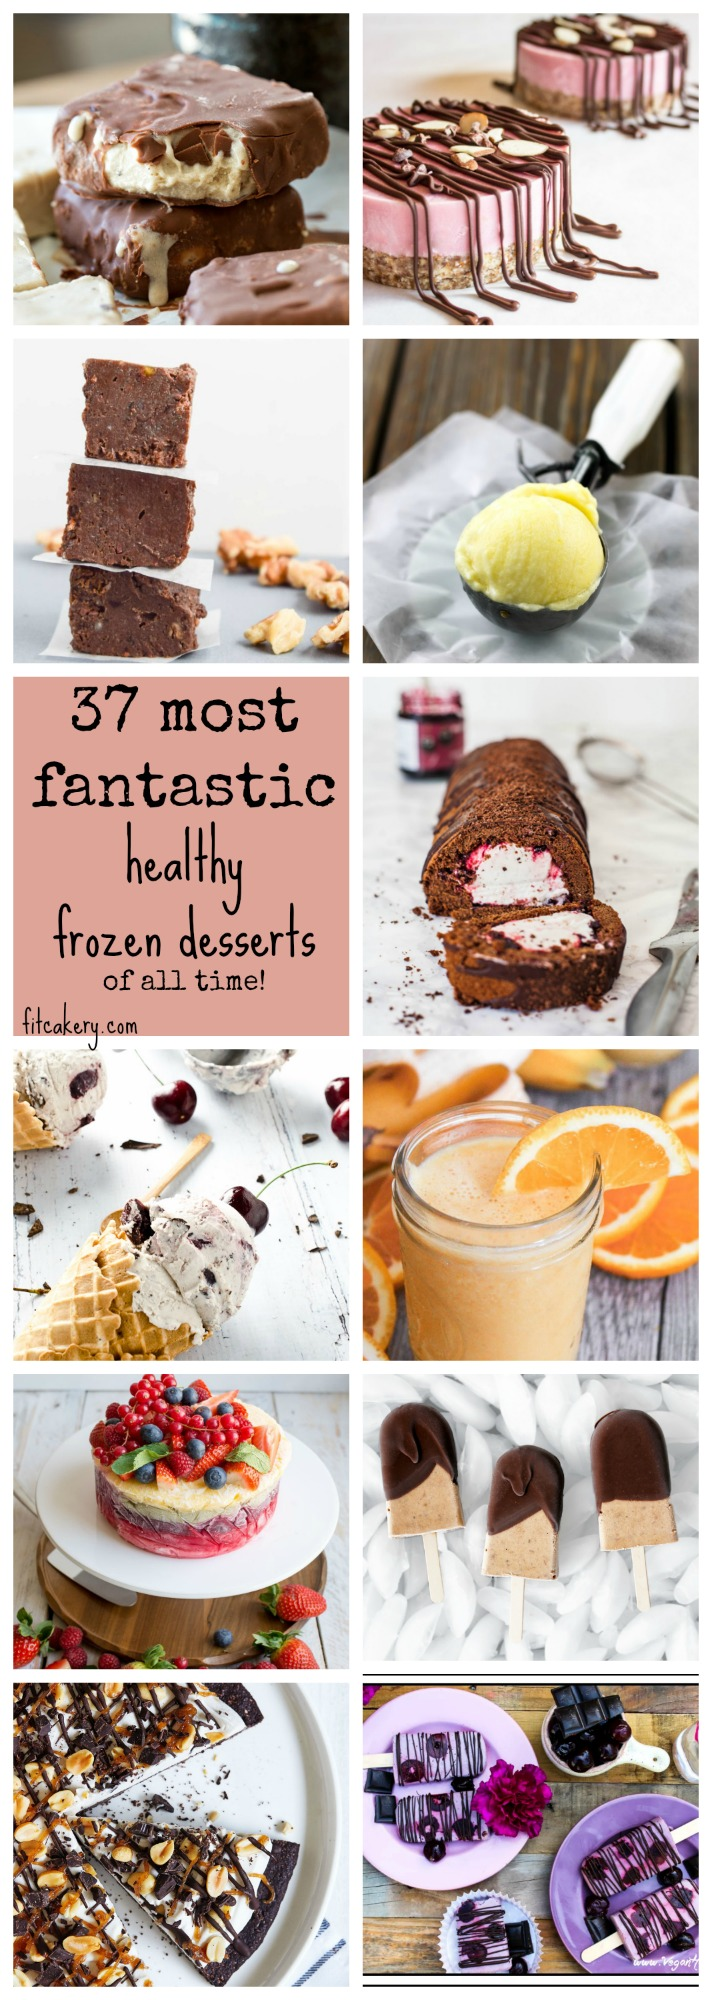 37 Most Fantastic Healthy Frozen Desserts - Of All Time! | collection of vegan, gluten-free, and other healthy desserts for summer | at FitCakery.com